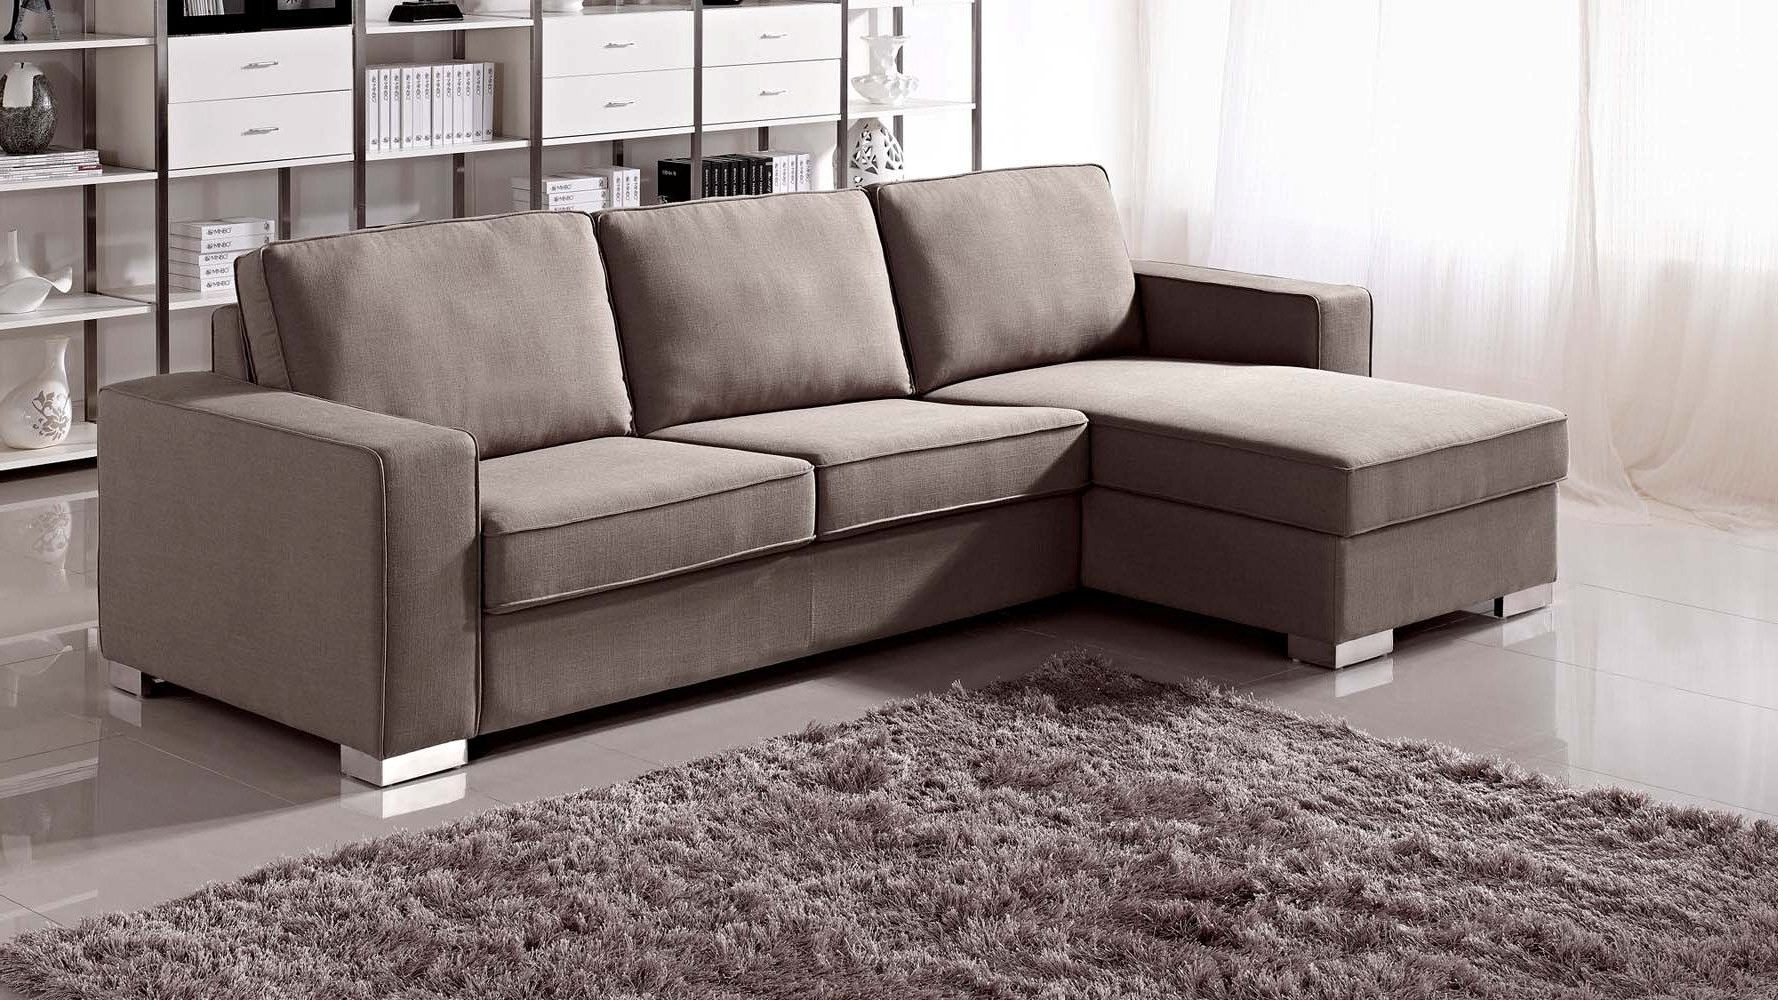 Widely Used Small Sectional Sofas With Chaise Throughout Sectional Sofa With Sleeper And Chaise (View 15 of 15)